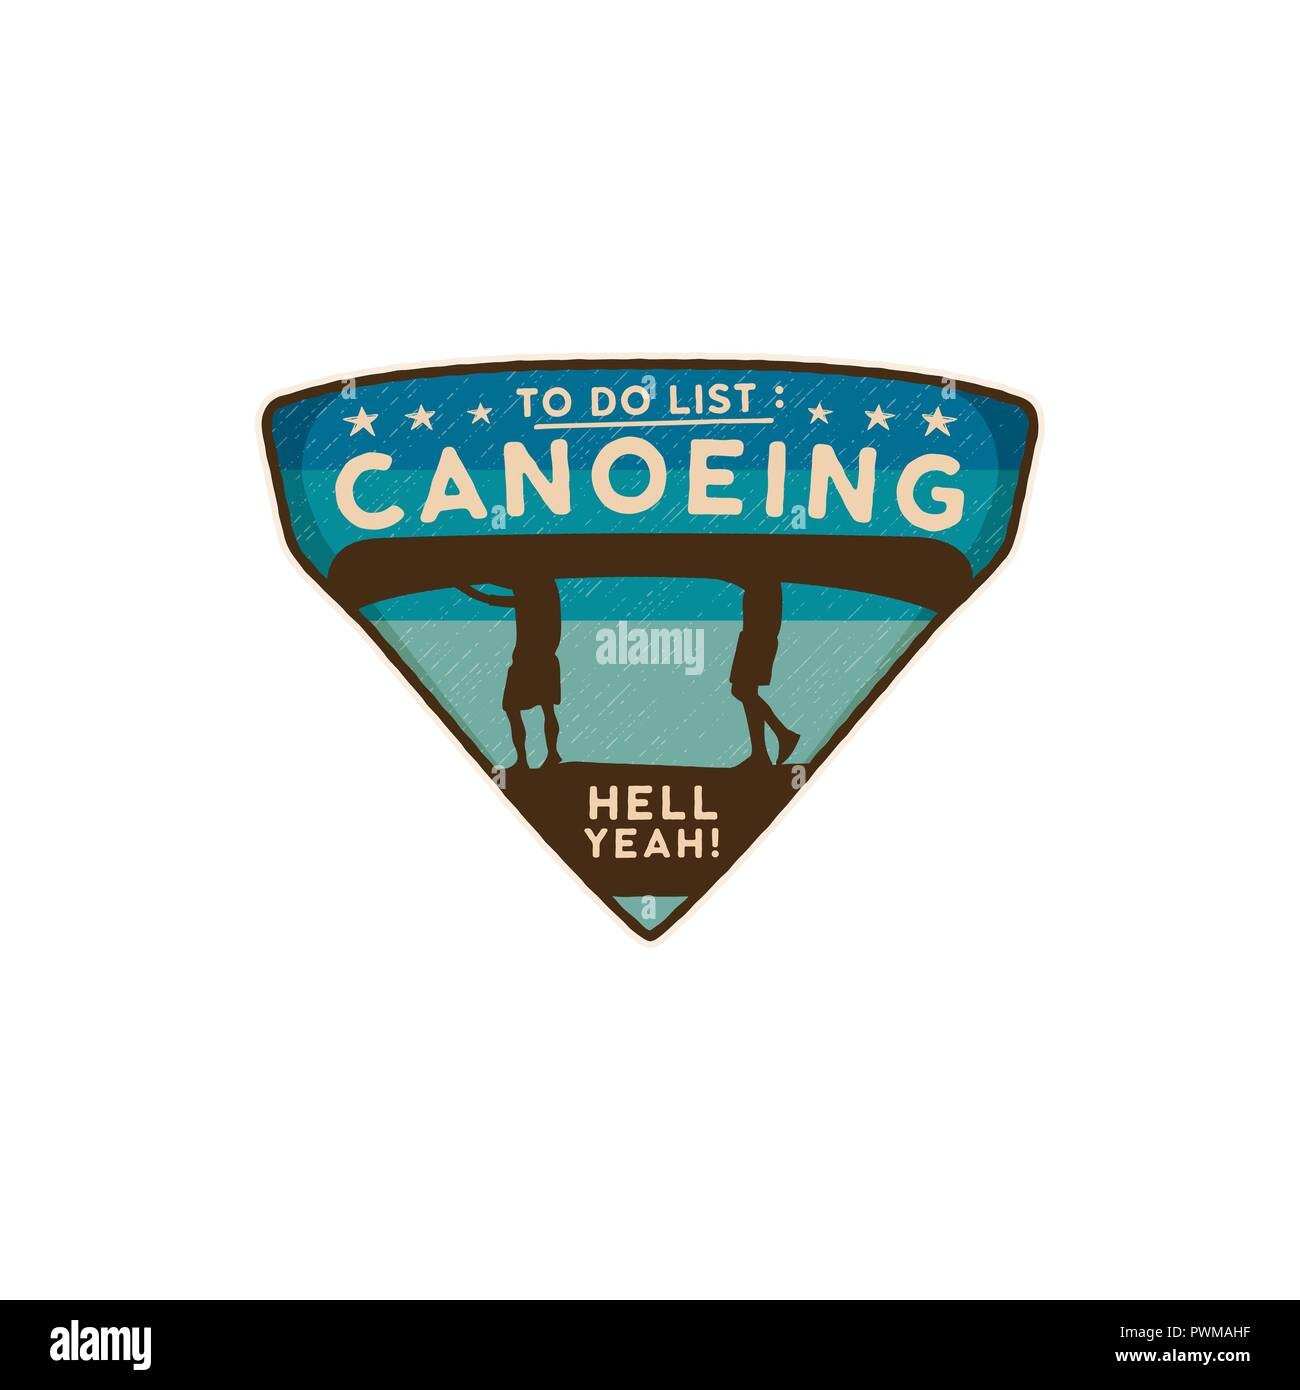 Canoeing Logo Emblem. Vintage hand drawn travel badge. Featuring two mens carrying canoe on the heads scene. Included custom adventure quote - To Do List - Canoeing. Stock vector wanderlust insignia - Stock Vector